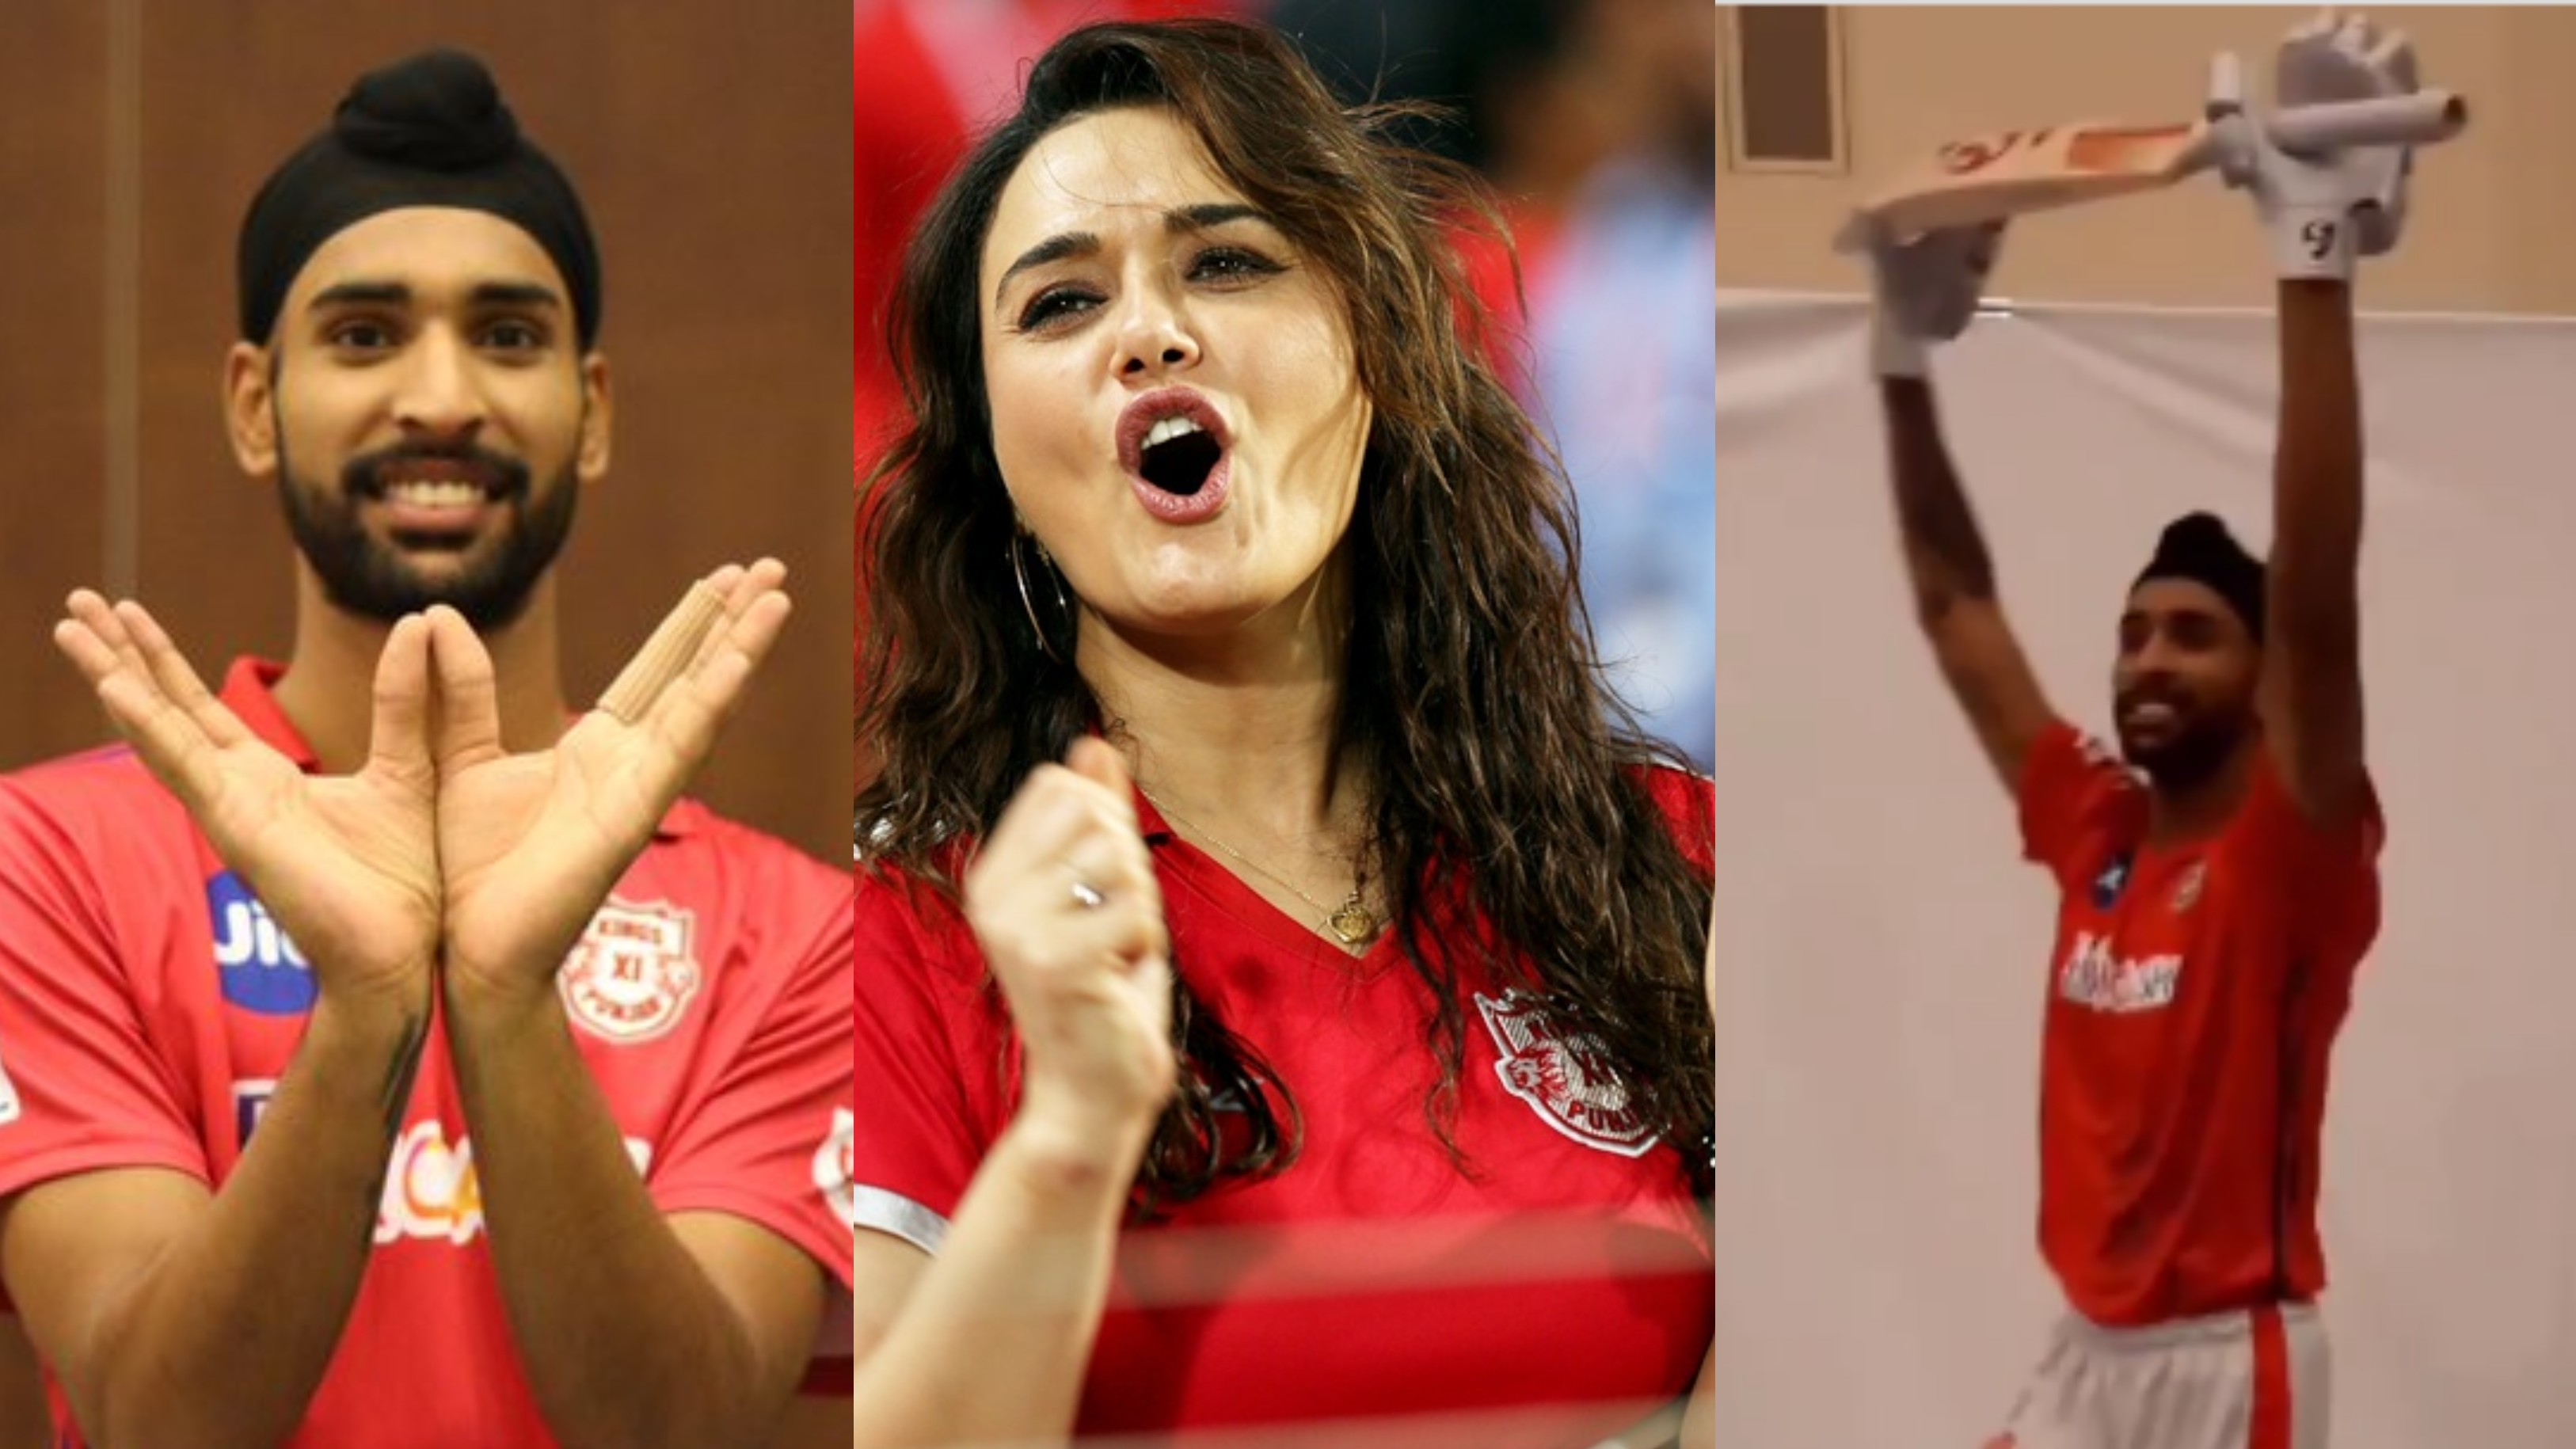 IPL 2020: WATCH - KXIP players' dance video goes viral; Preity Zinta posts hilarious comment